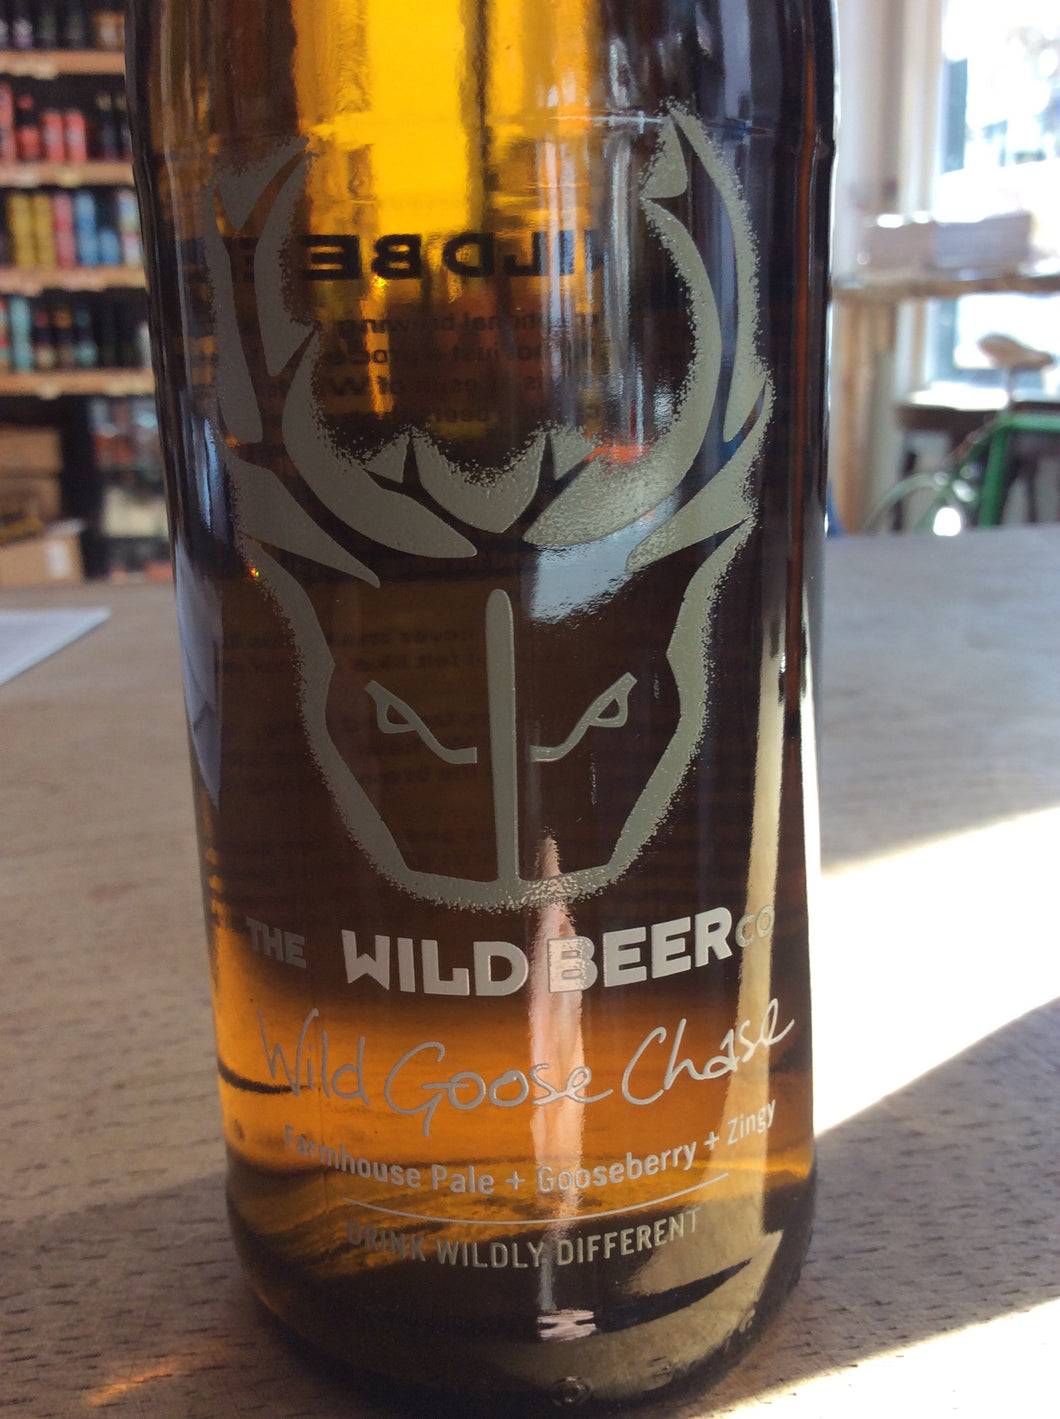 The Wild Beer co. Wild Goose Chase Farmhouse Pale